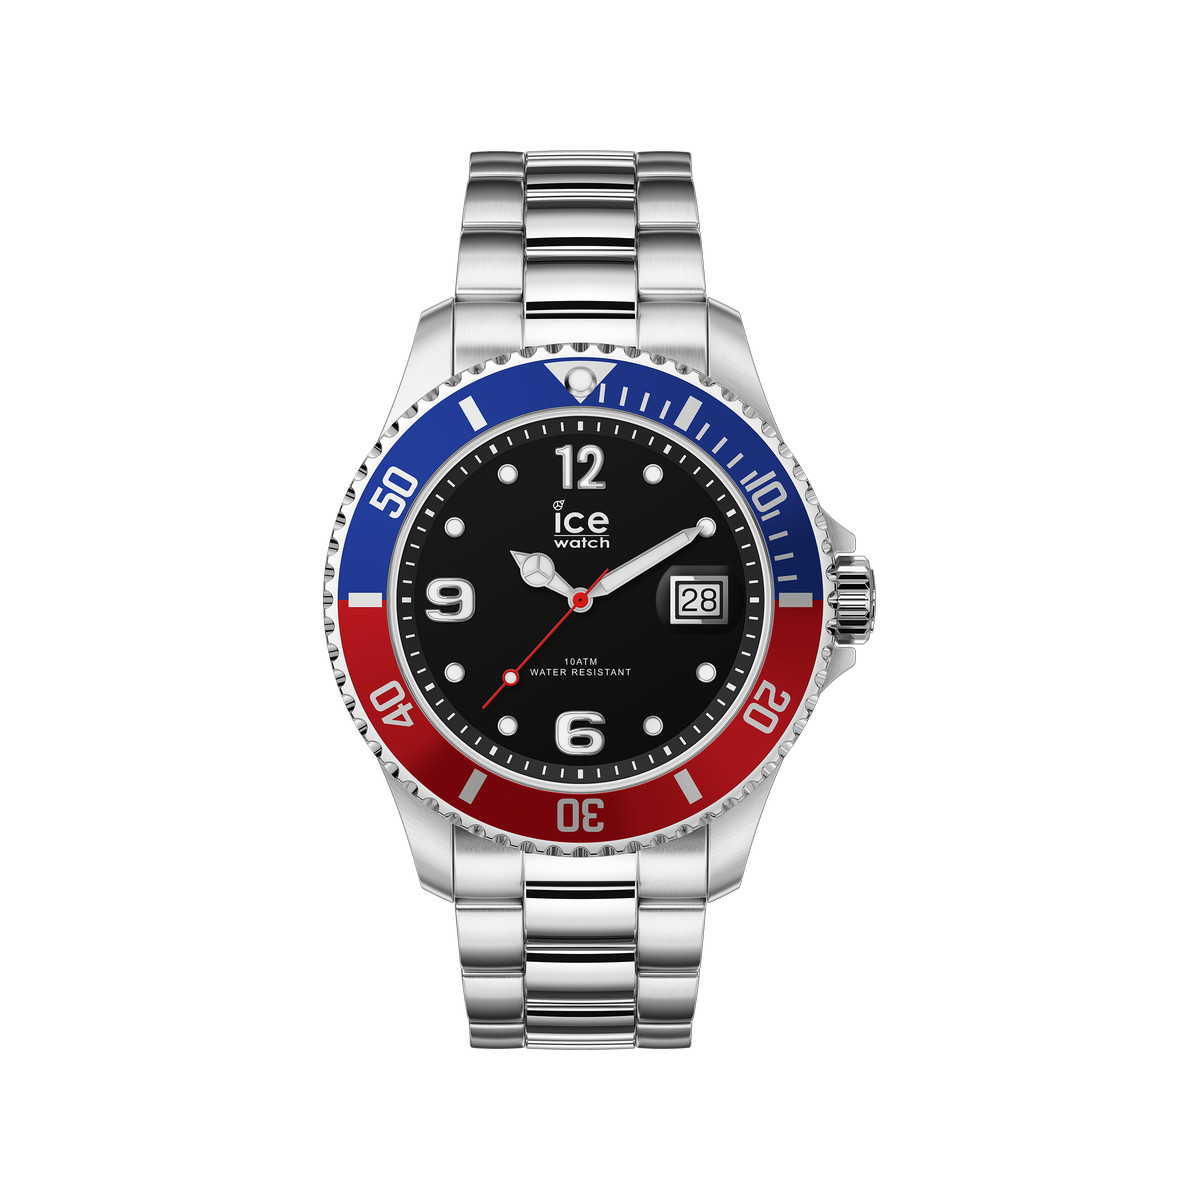 Montre ICE WATCH ICE steel Bracelet Acier